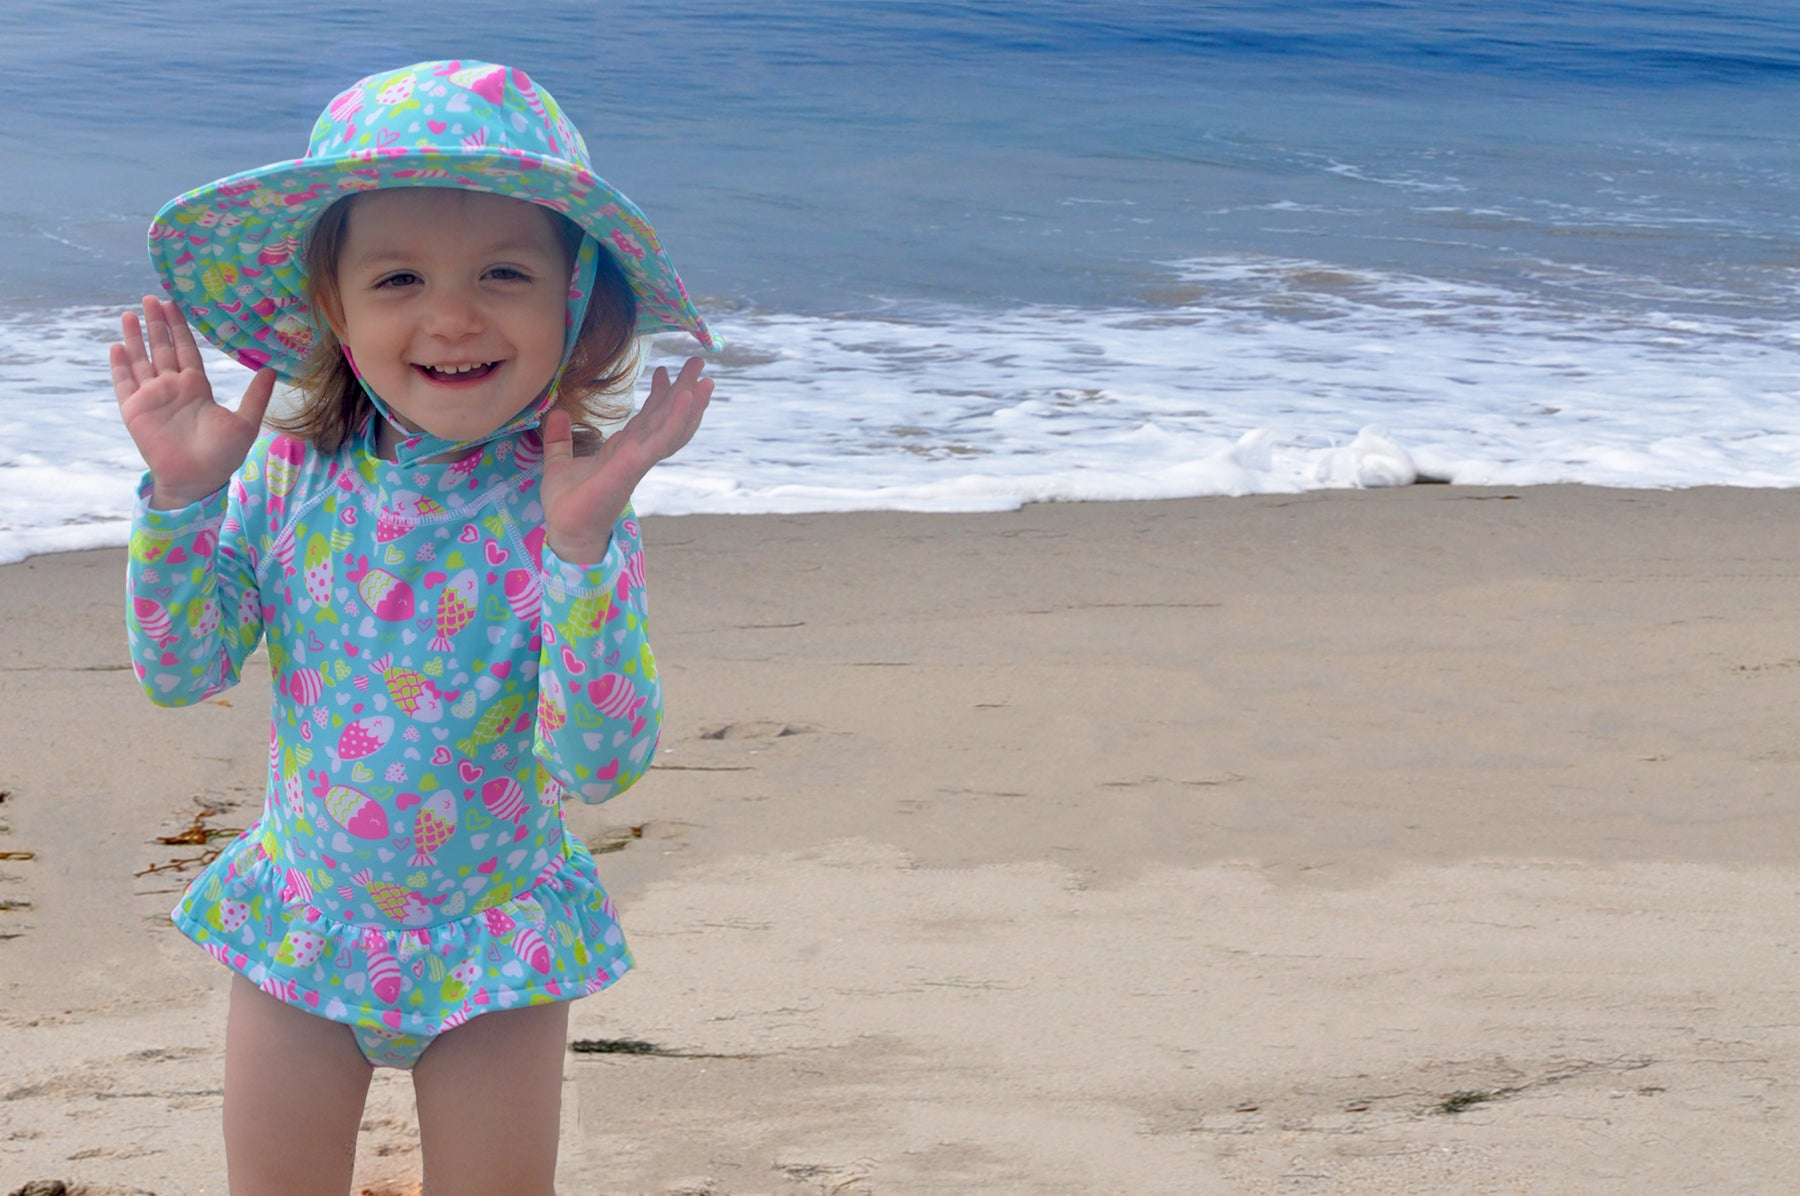 Young girl playing at the beach wearing the Flap Happy rainbow fish swimsuit and matching Flap Happy hat.